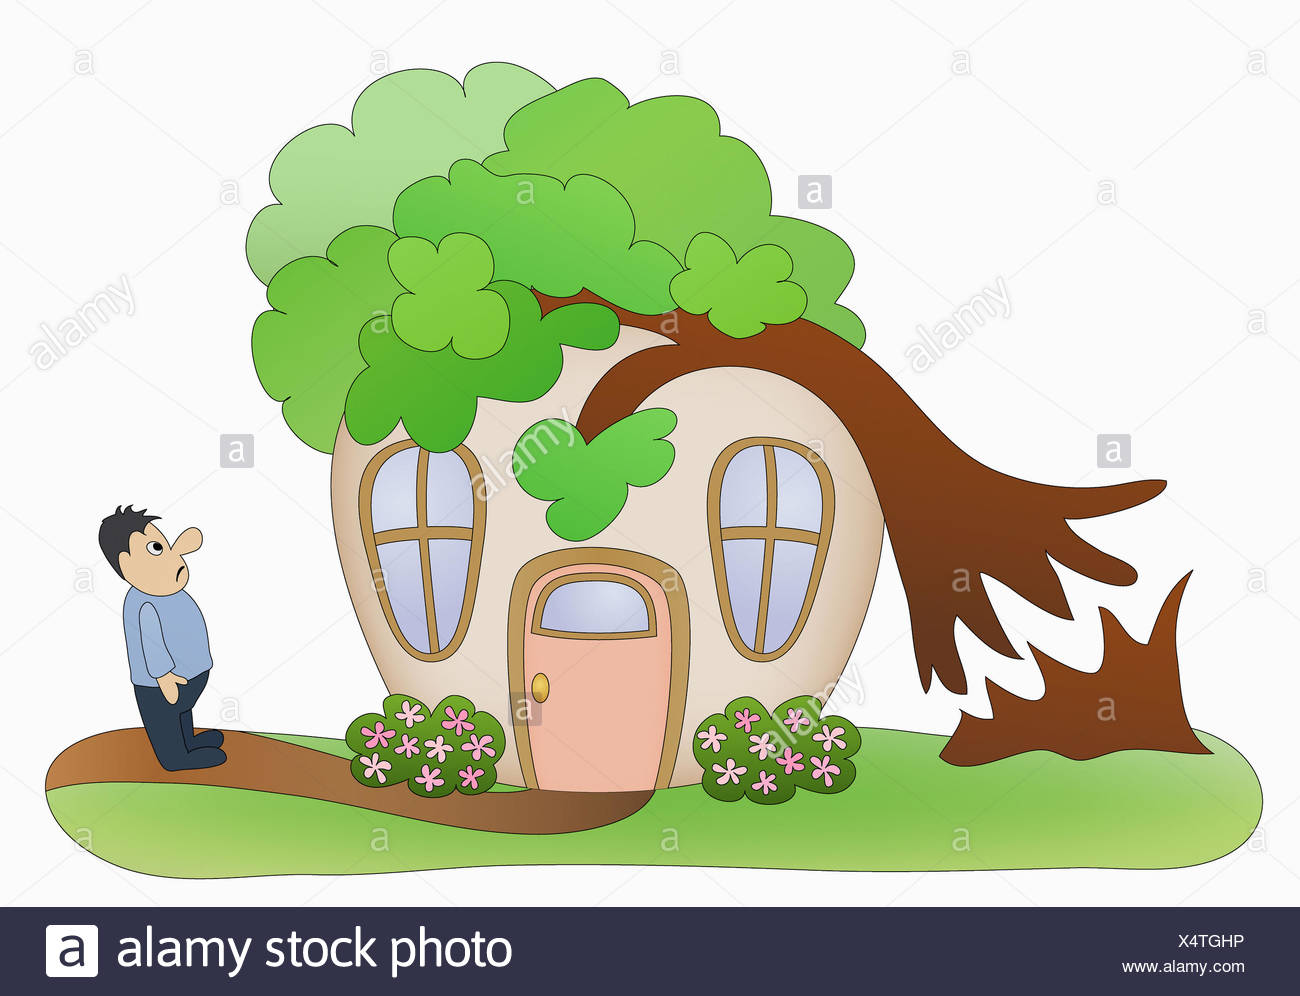 Household Disaster Tree Falling On House Stock Photo Alamy 50,000+ vectors, stock photos & psd files. https www alamy com household disaster tree falling on house image278364402 html